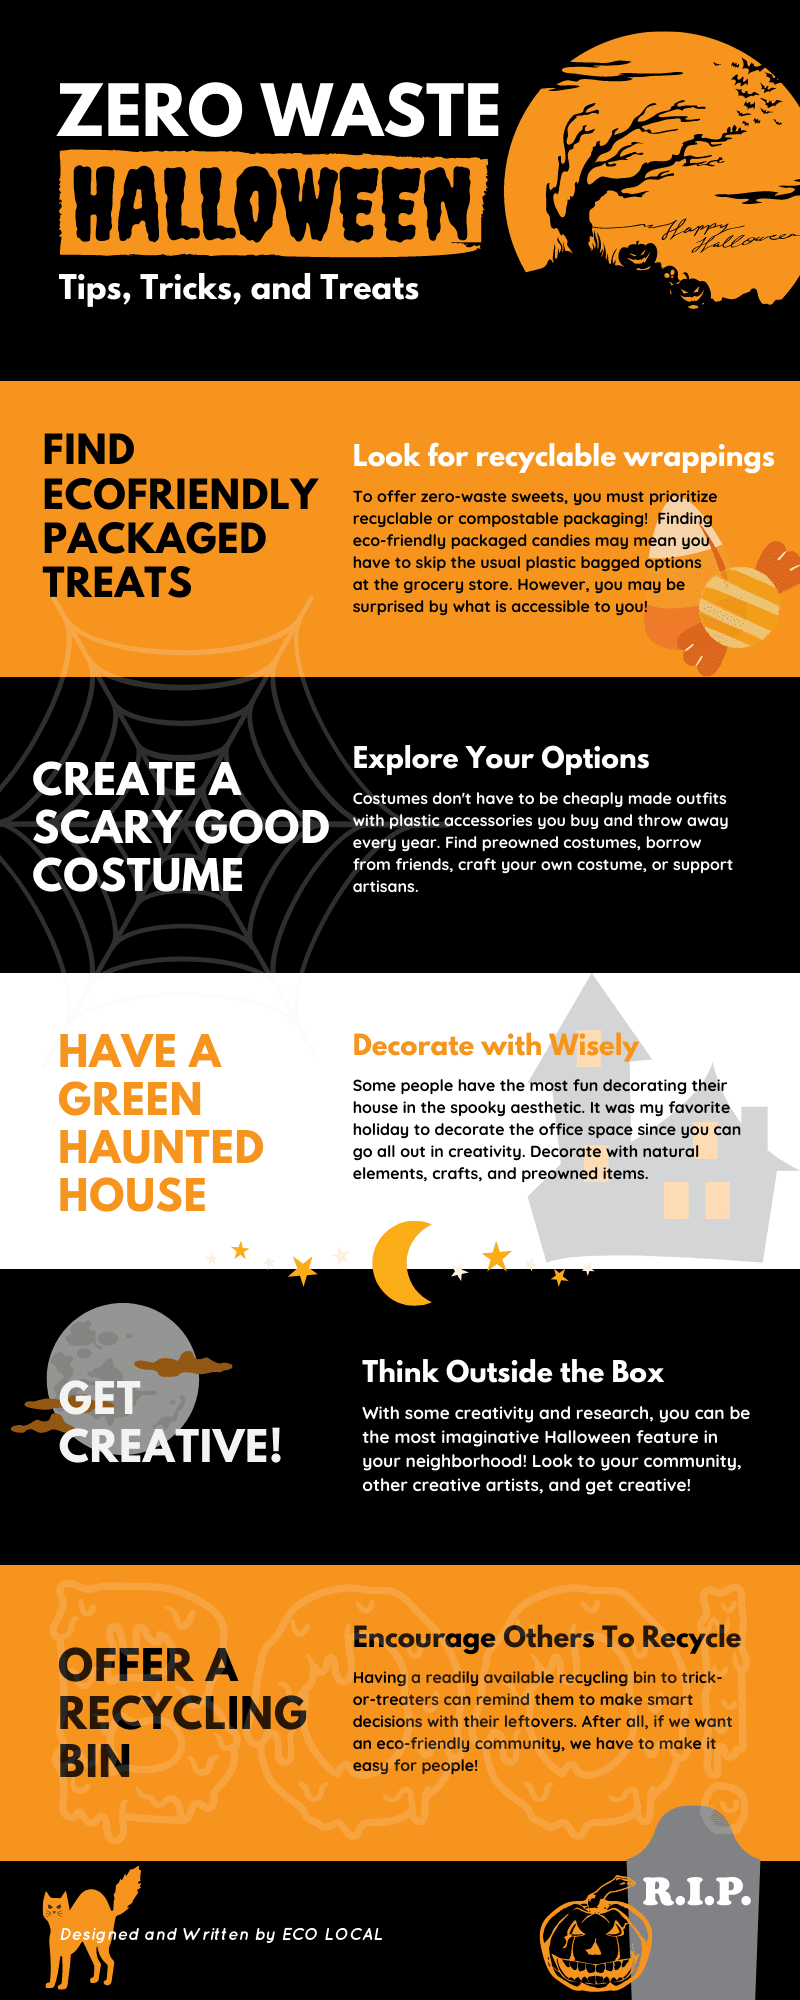 Zero Waste Halloween #infographic #Environment #Halloween #Zero Waste